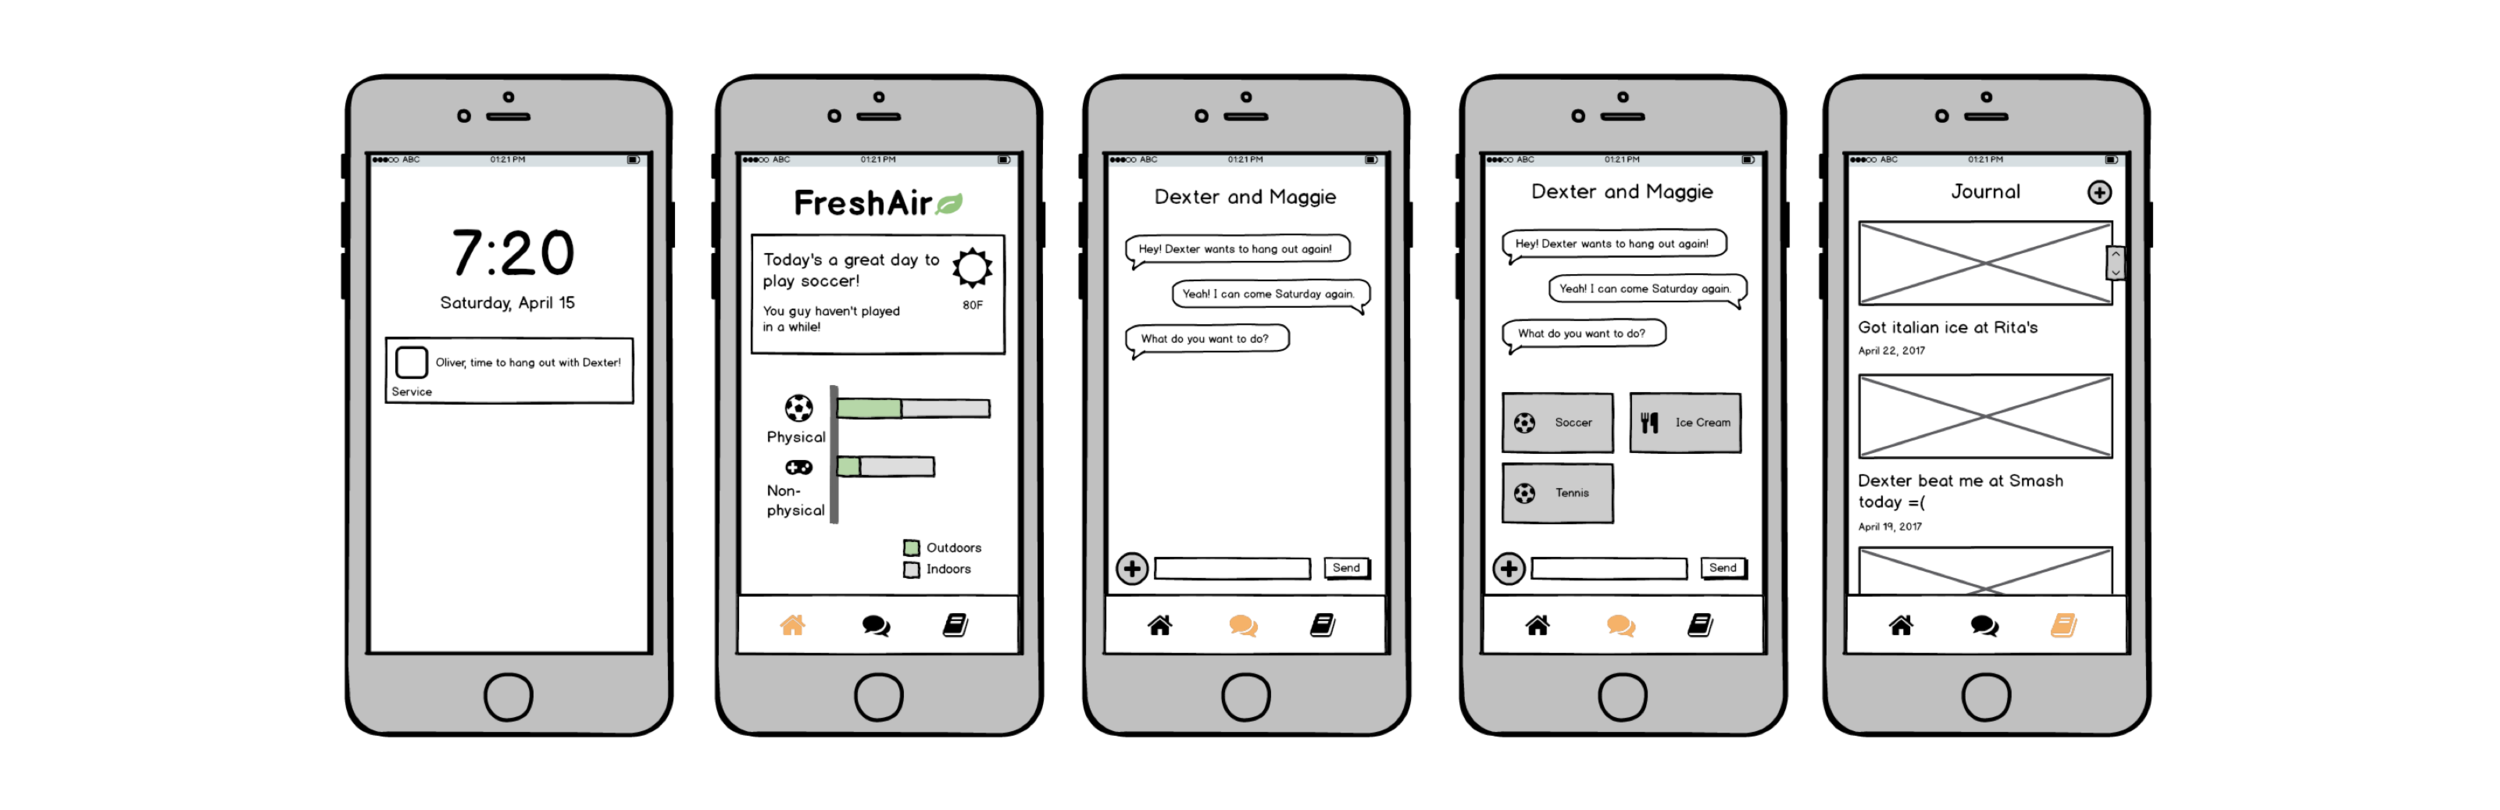 app_wireframe.png